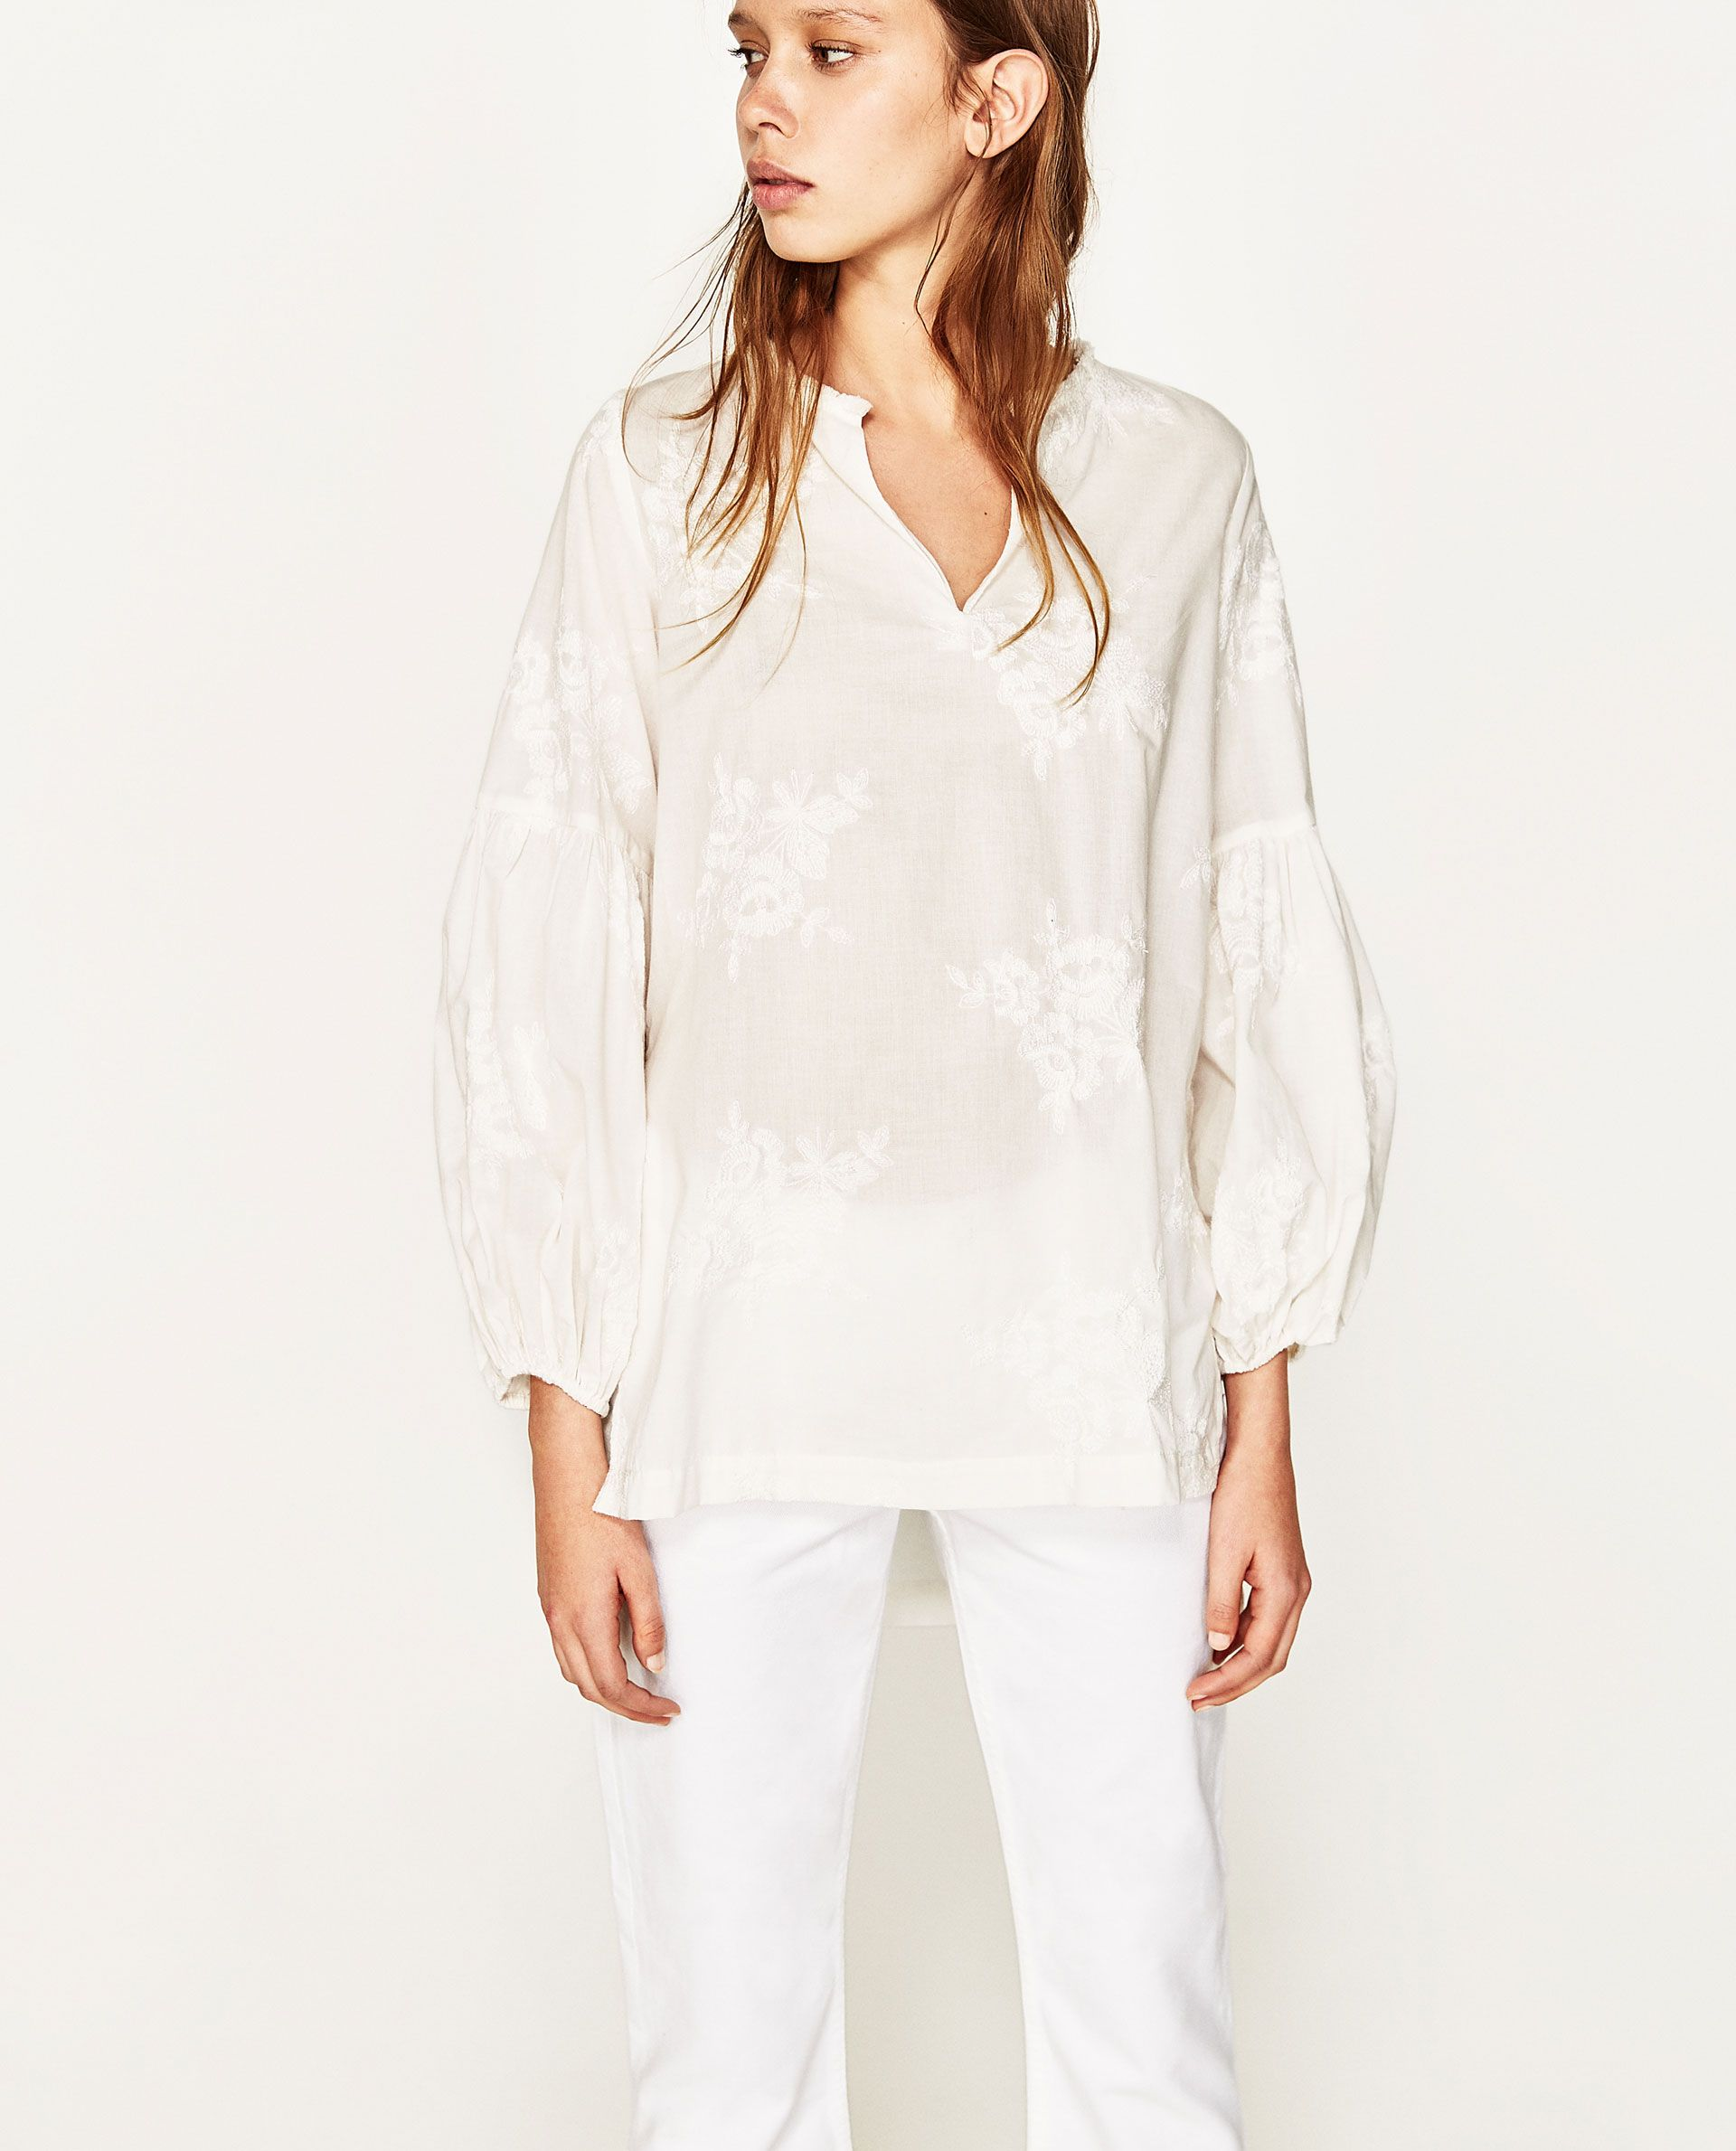 EMBROIDERED BLOUSE - NEW IN